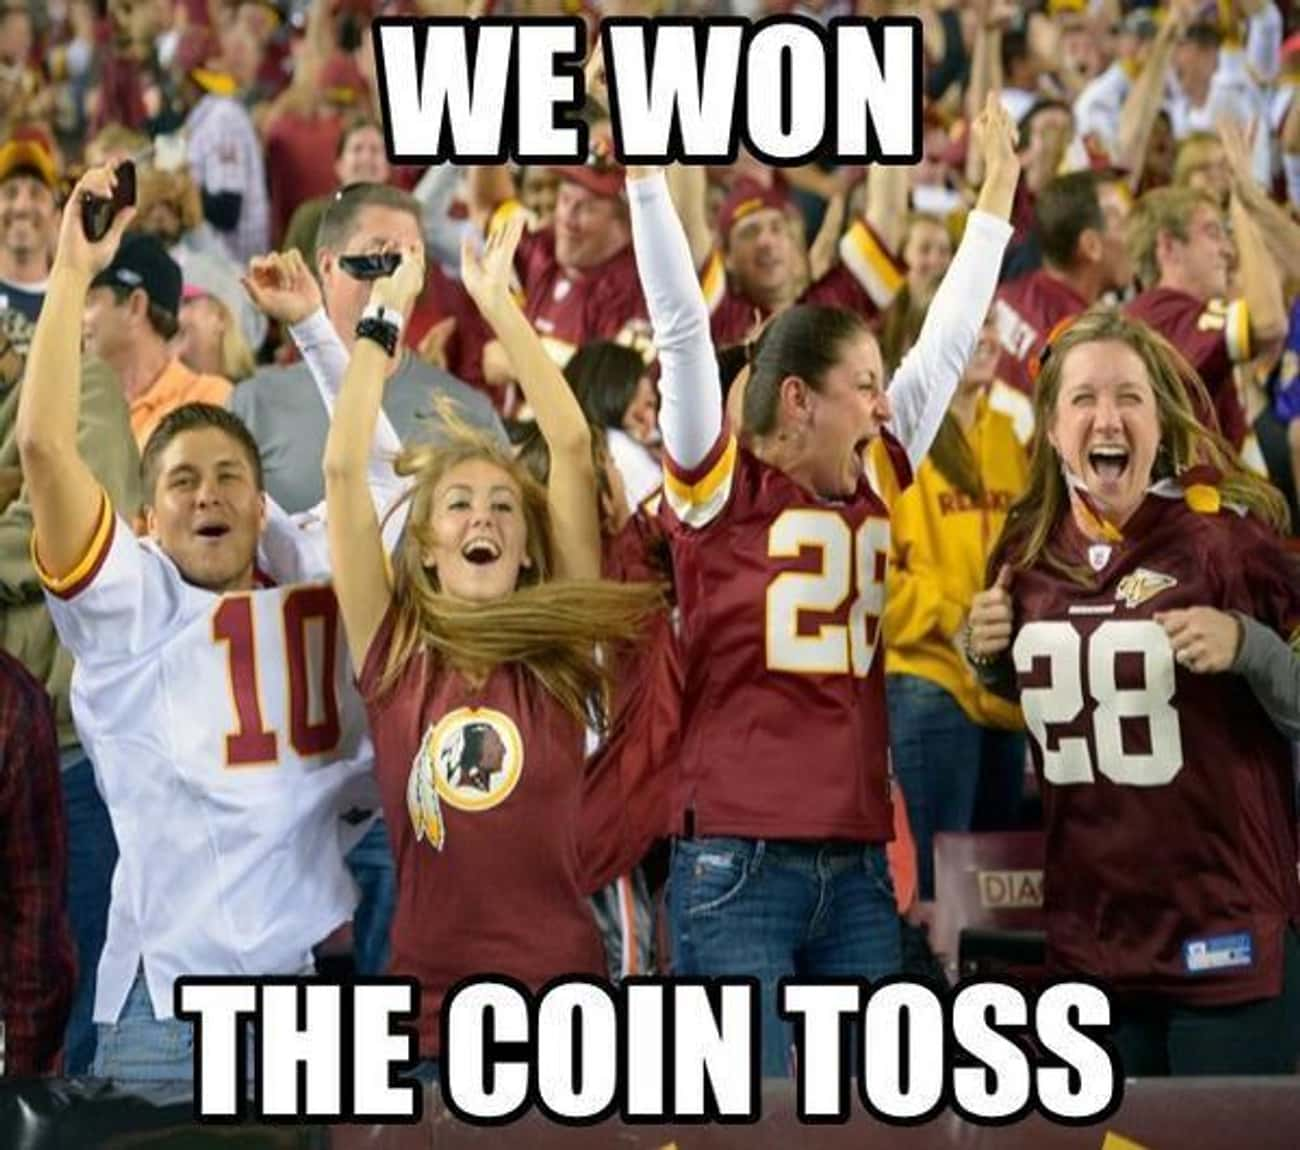 Take A Win Wherever You Can is listed (or ranked) 1 on the list Memes To Express Why Washington Redskins Fans Are The Worst